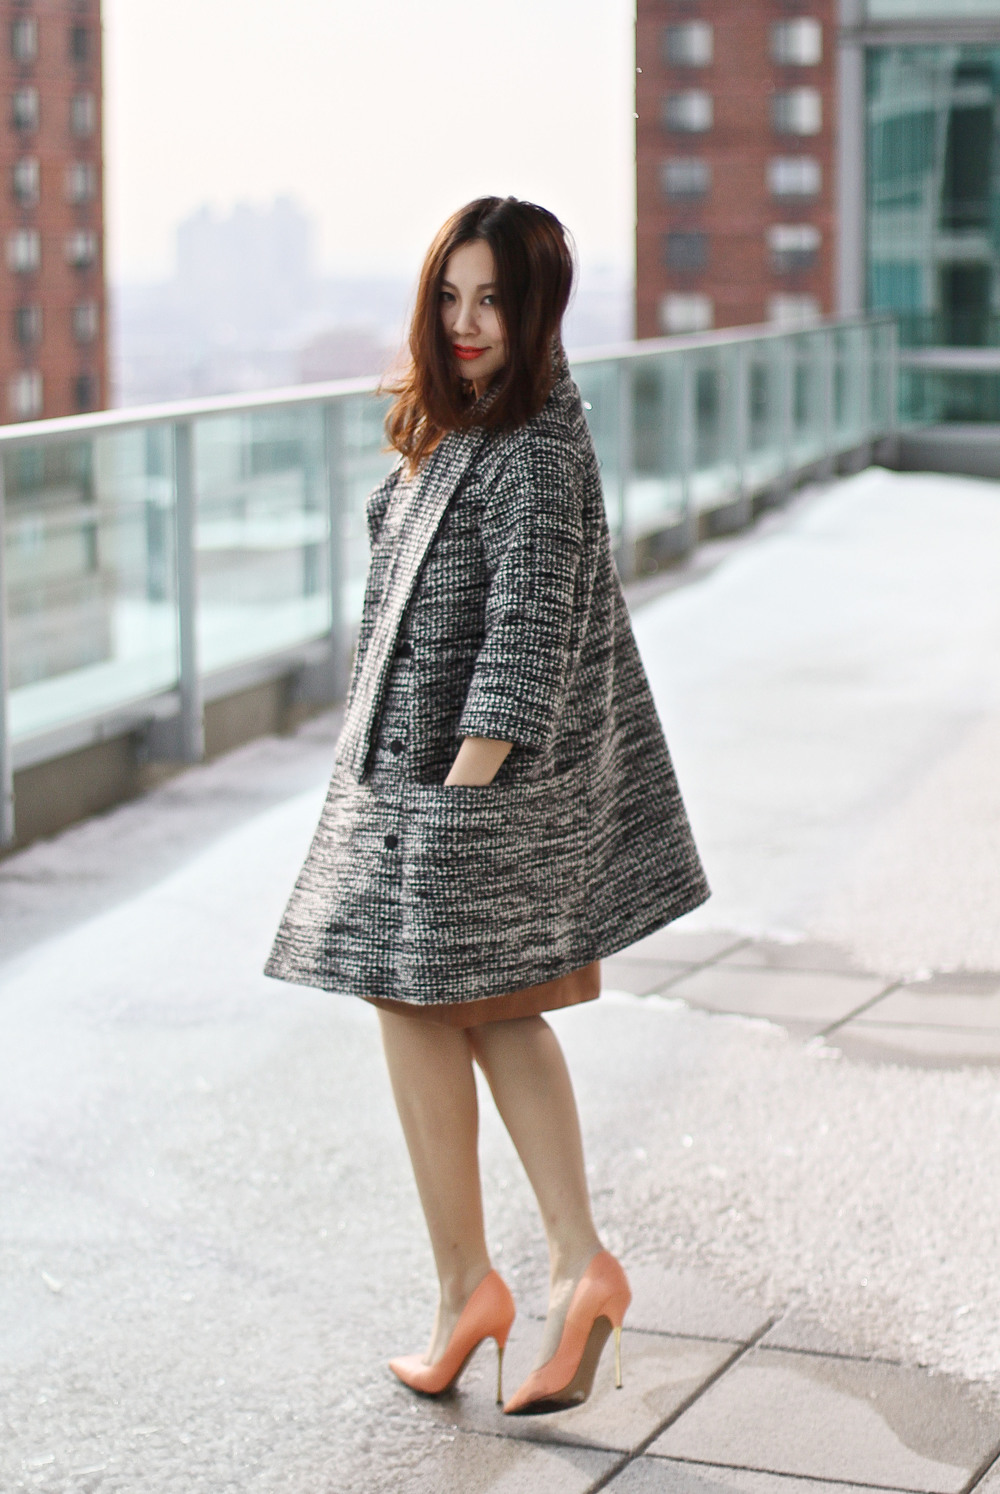 rosalina pong coat nightlook1.jpg